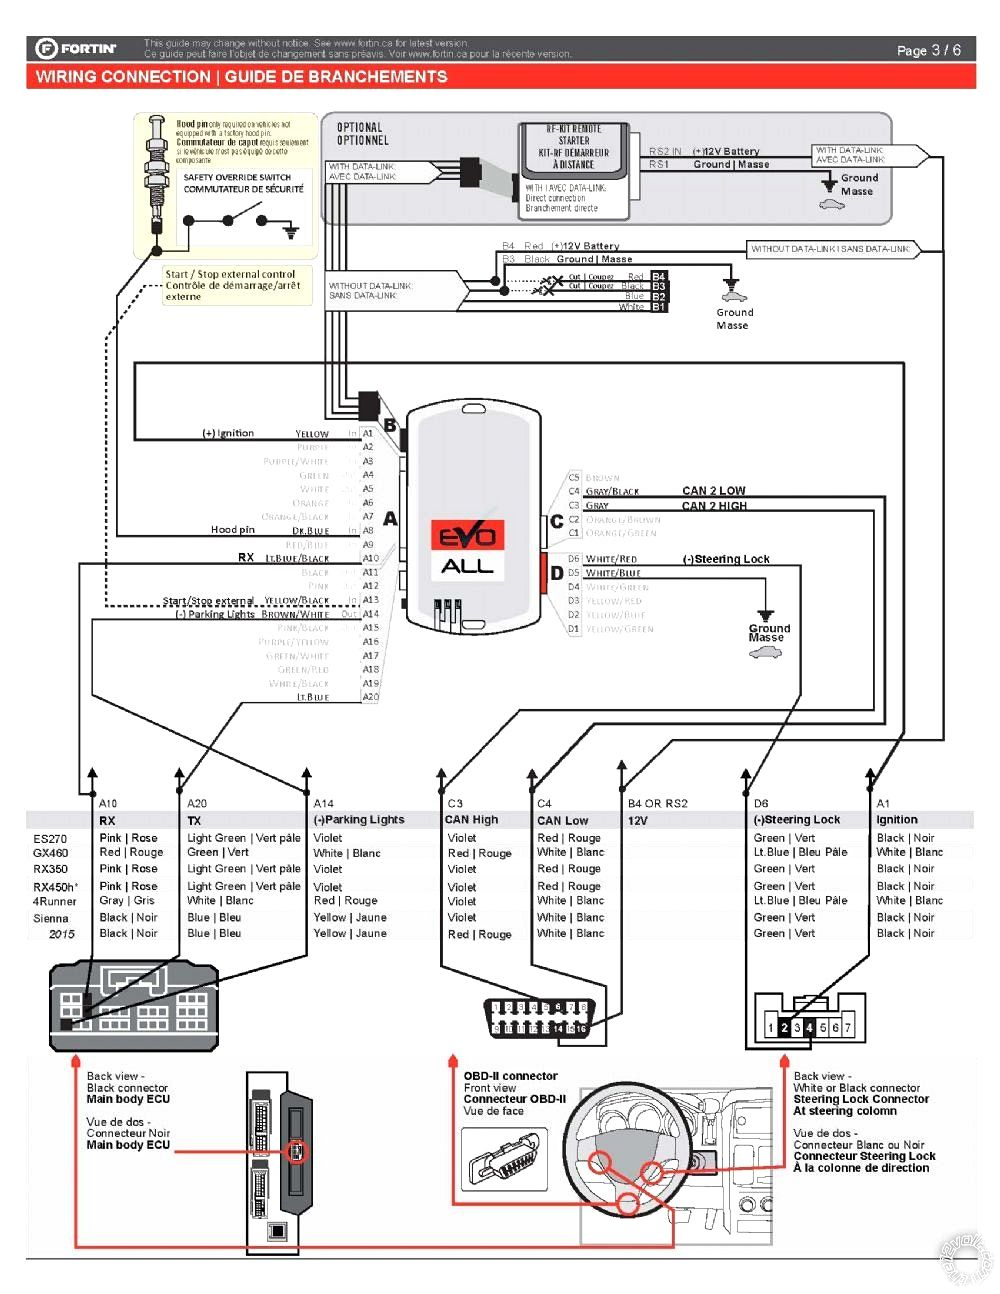 medium resolution of 12volt com wiring diagrams lennox conservator iii g16xq4 75 3 12 volt wiring diagram parking light